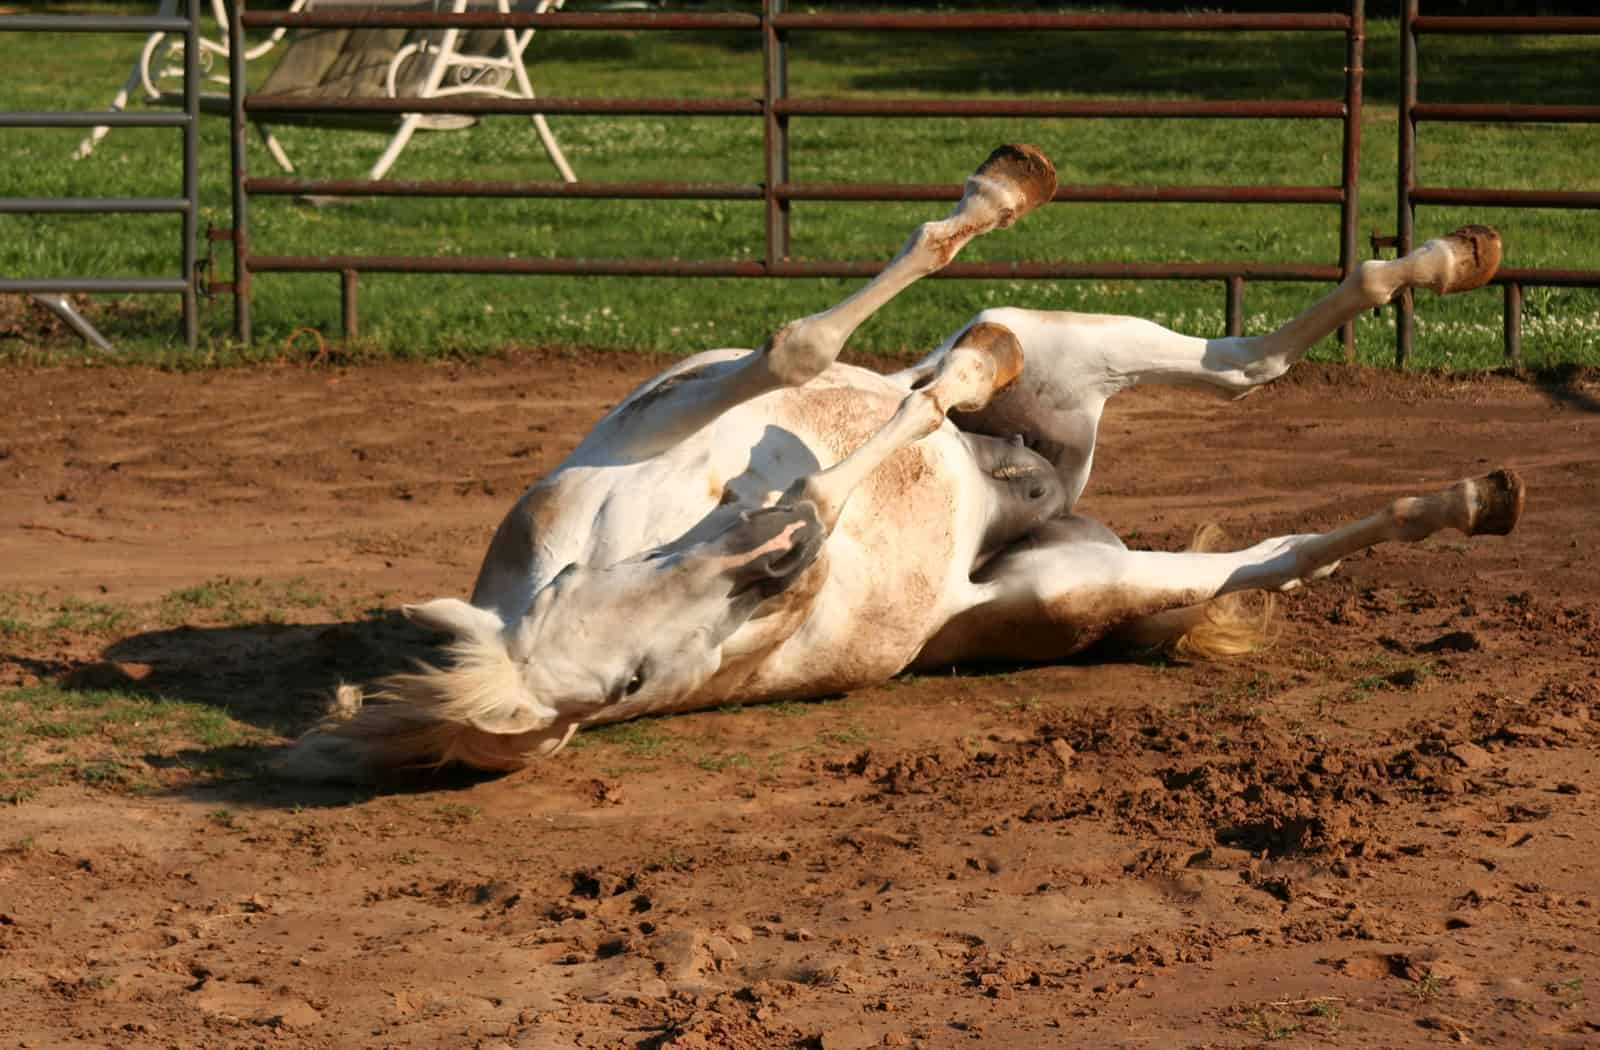 Are Old Horses More At-Risk for Colic?